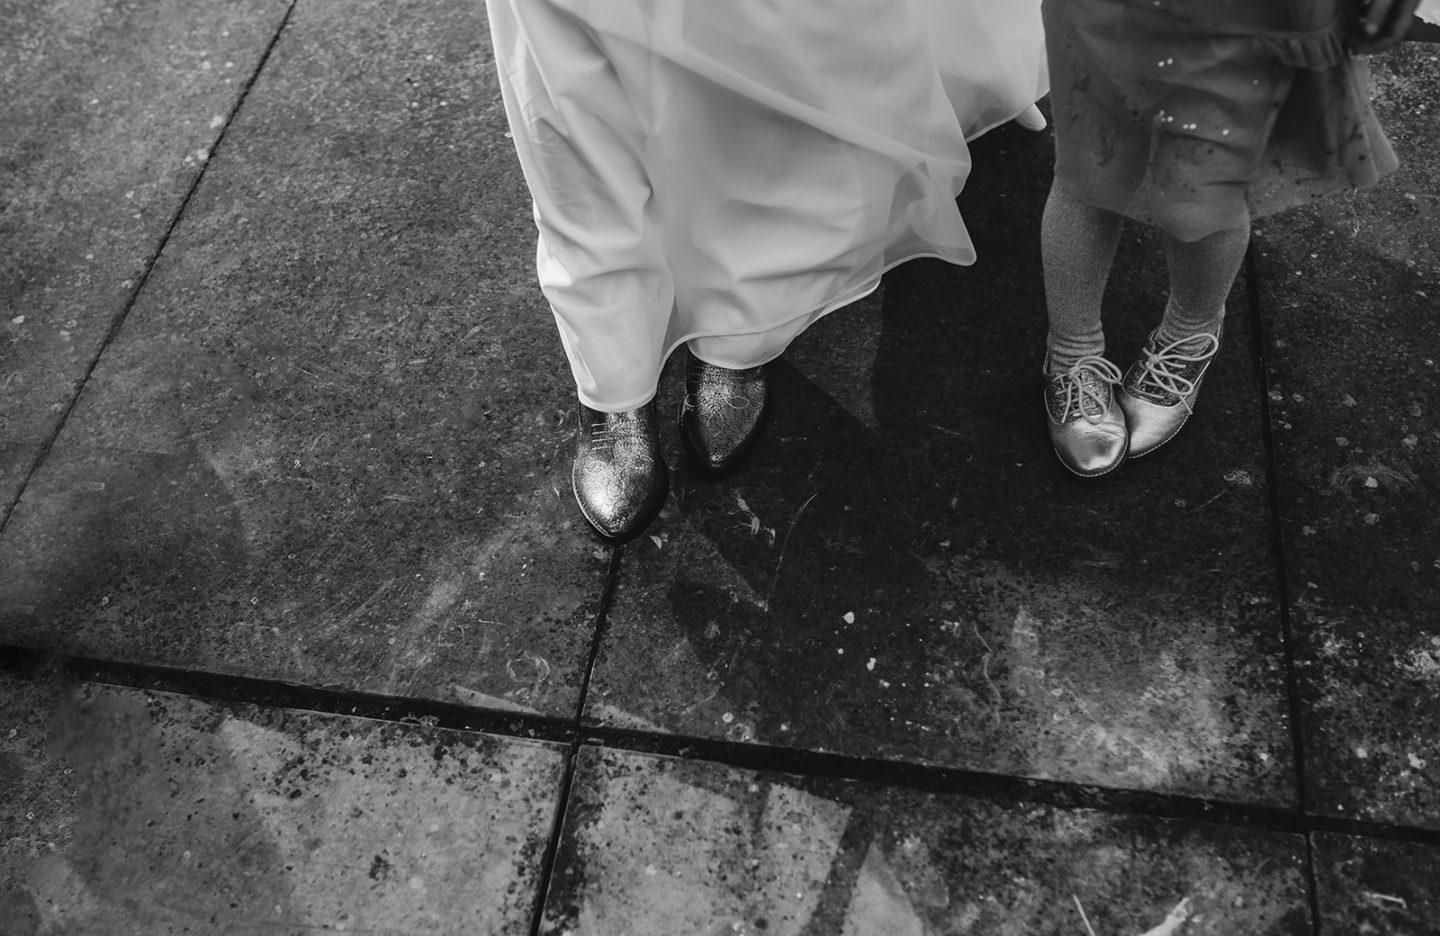 Letters to Lena - on your 5th birthday: Mother and daughter's shoes on Mother's wedding day.